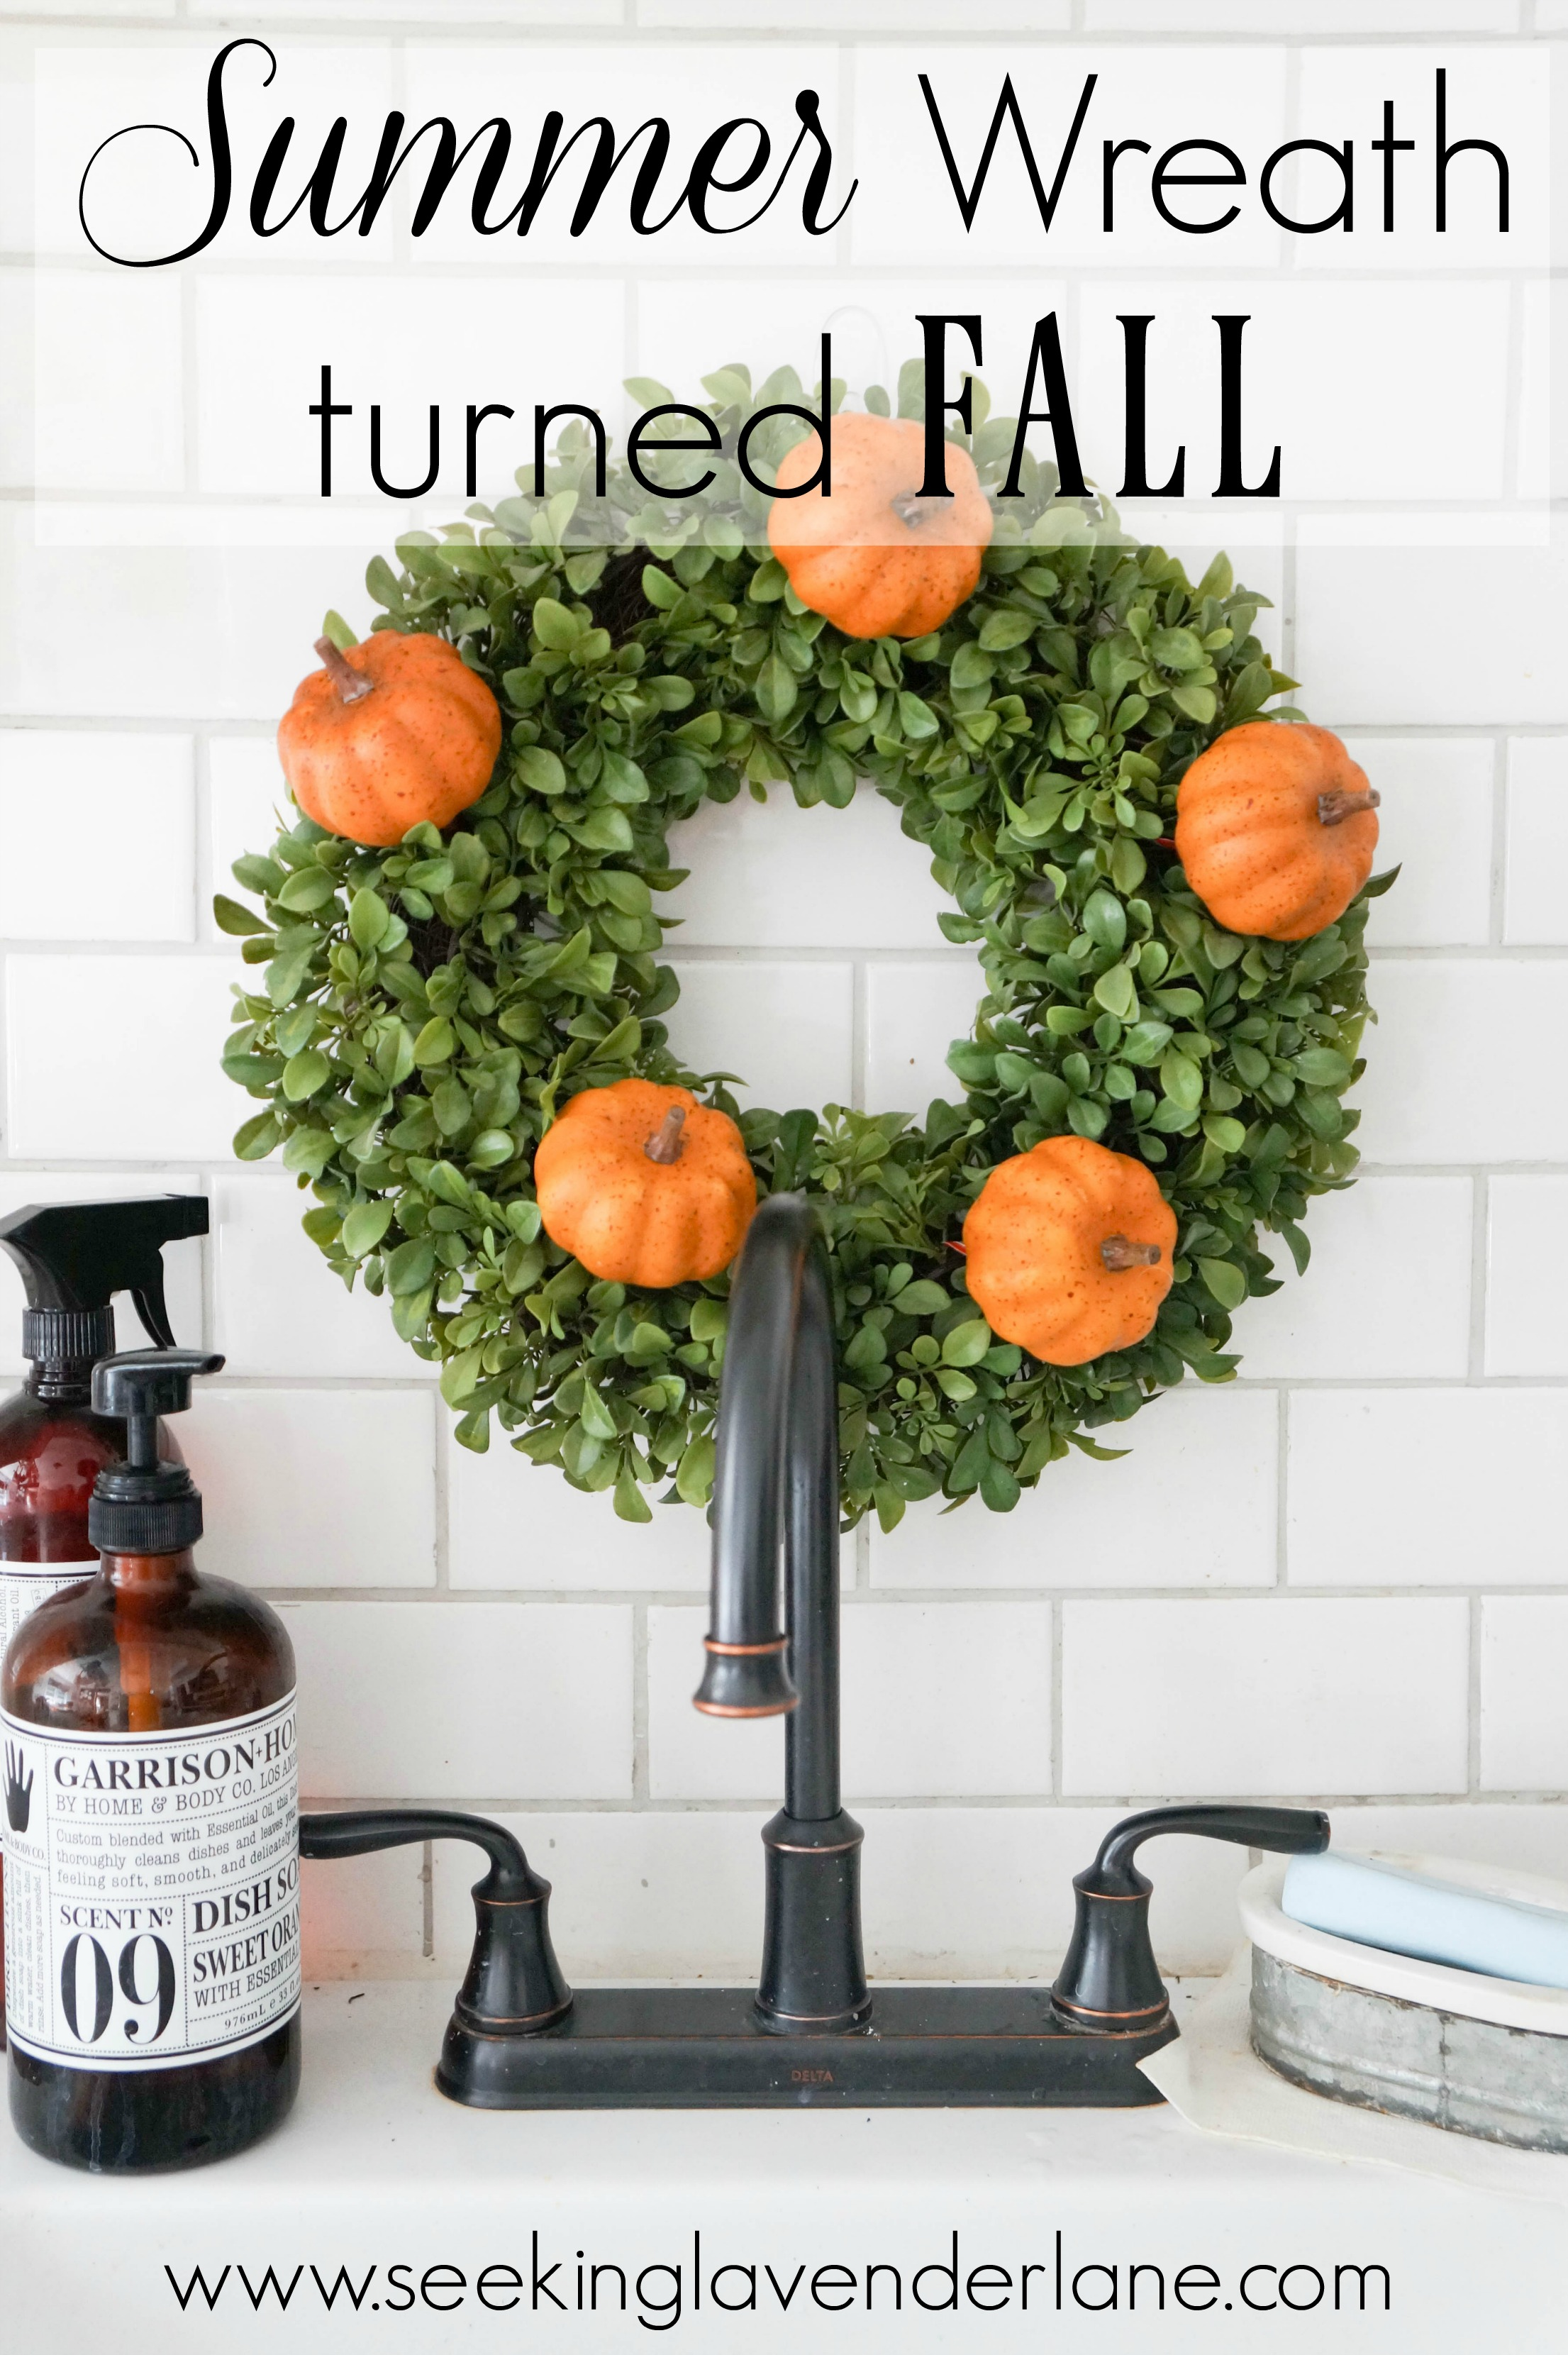 Summer Wreath Turned Fall-logo